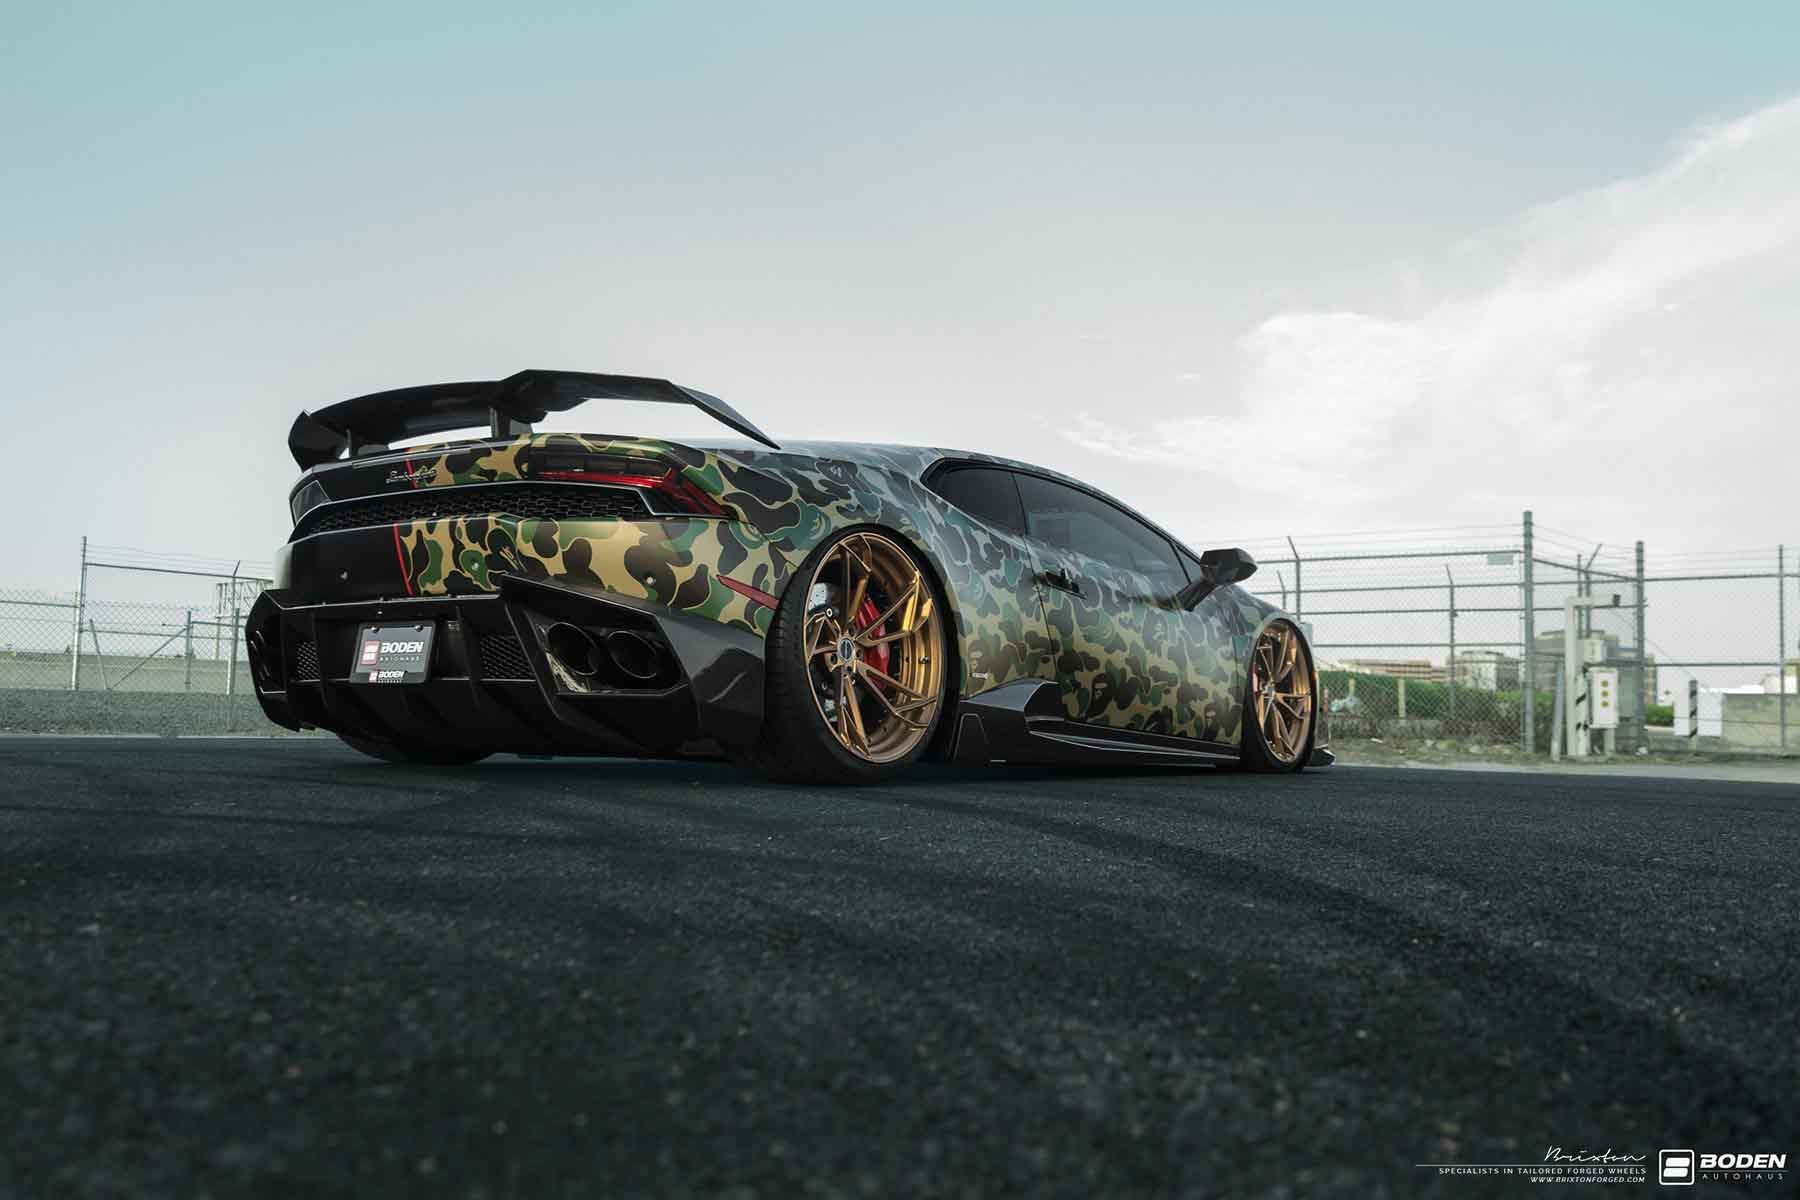 images-products-1-1925-232974213-brixton-forged-wheels-lamborghini-huracan-boden-autohaus-wstbank-bape-camo-brixton-forged-pf1-du.jpg